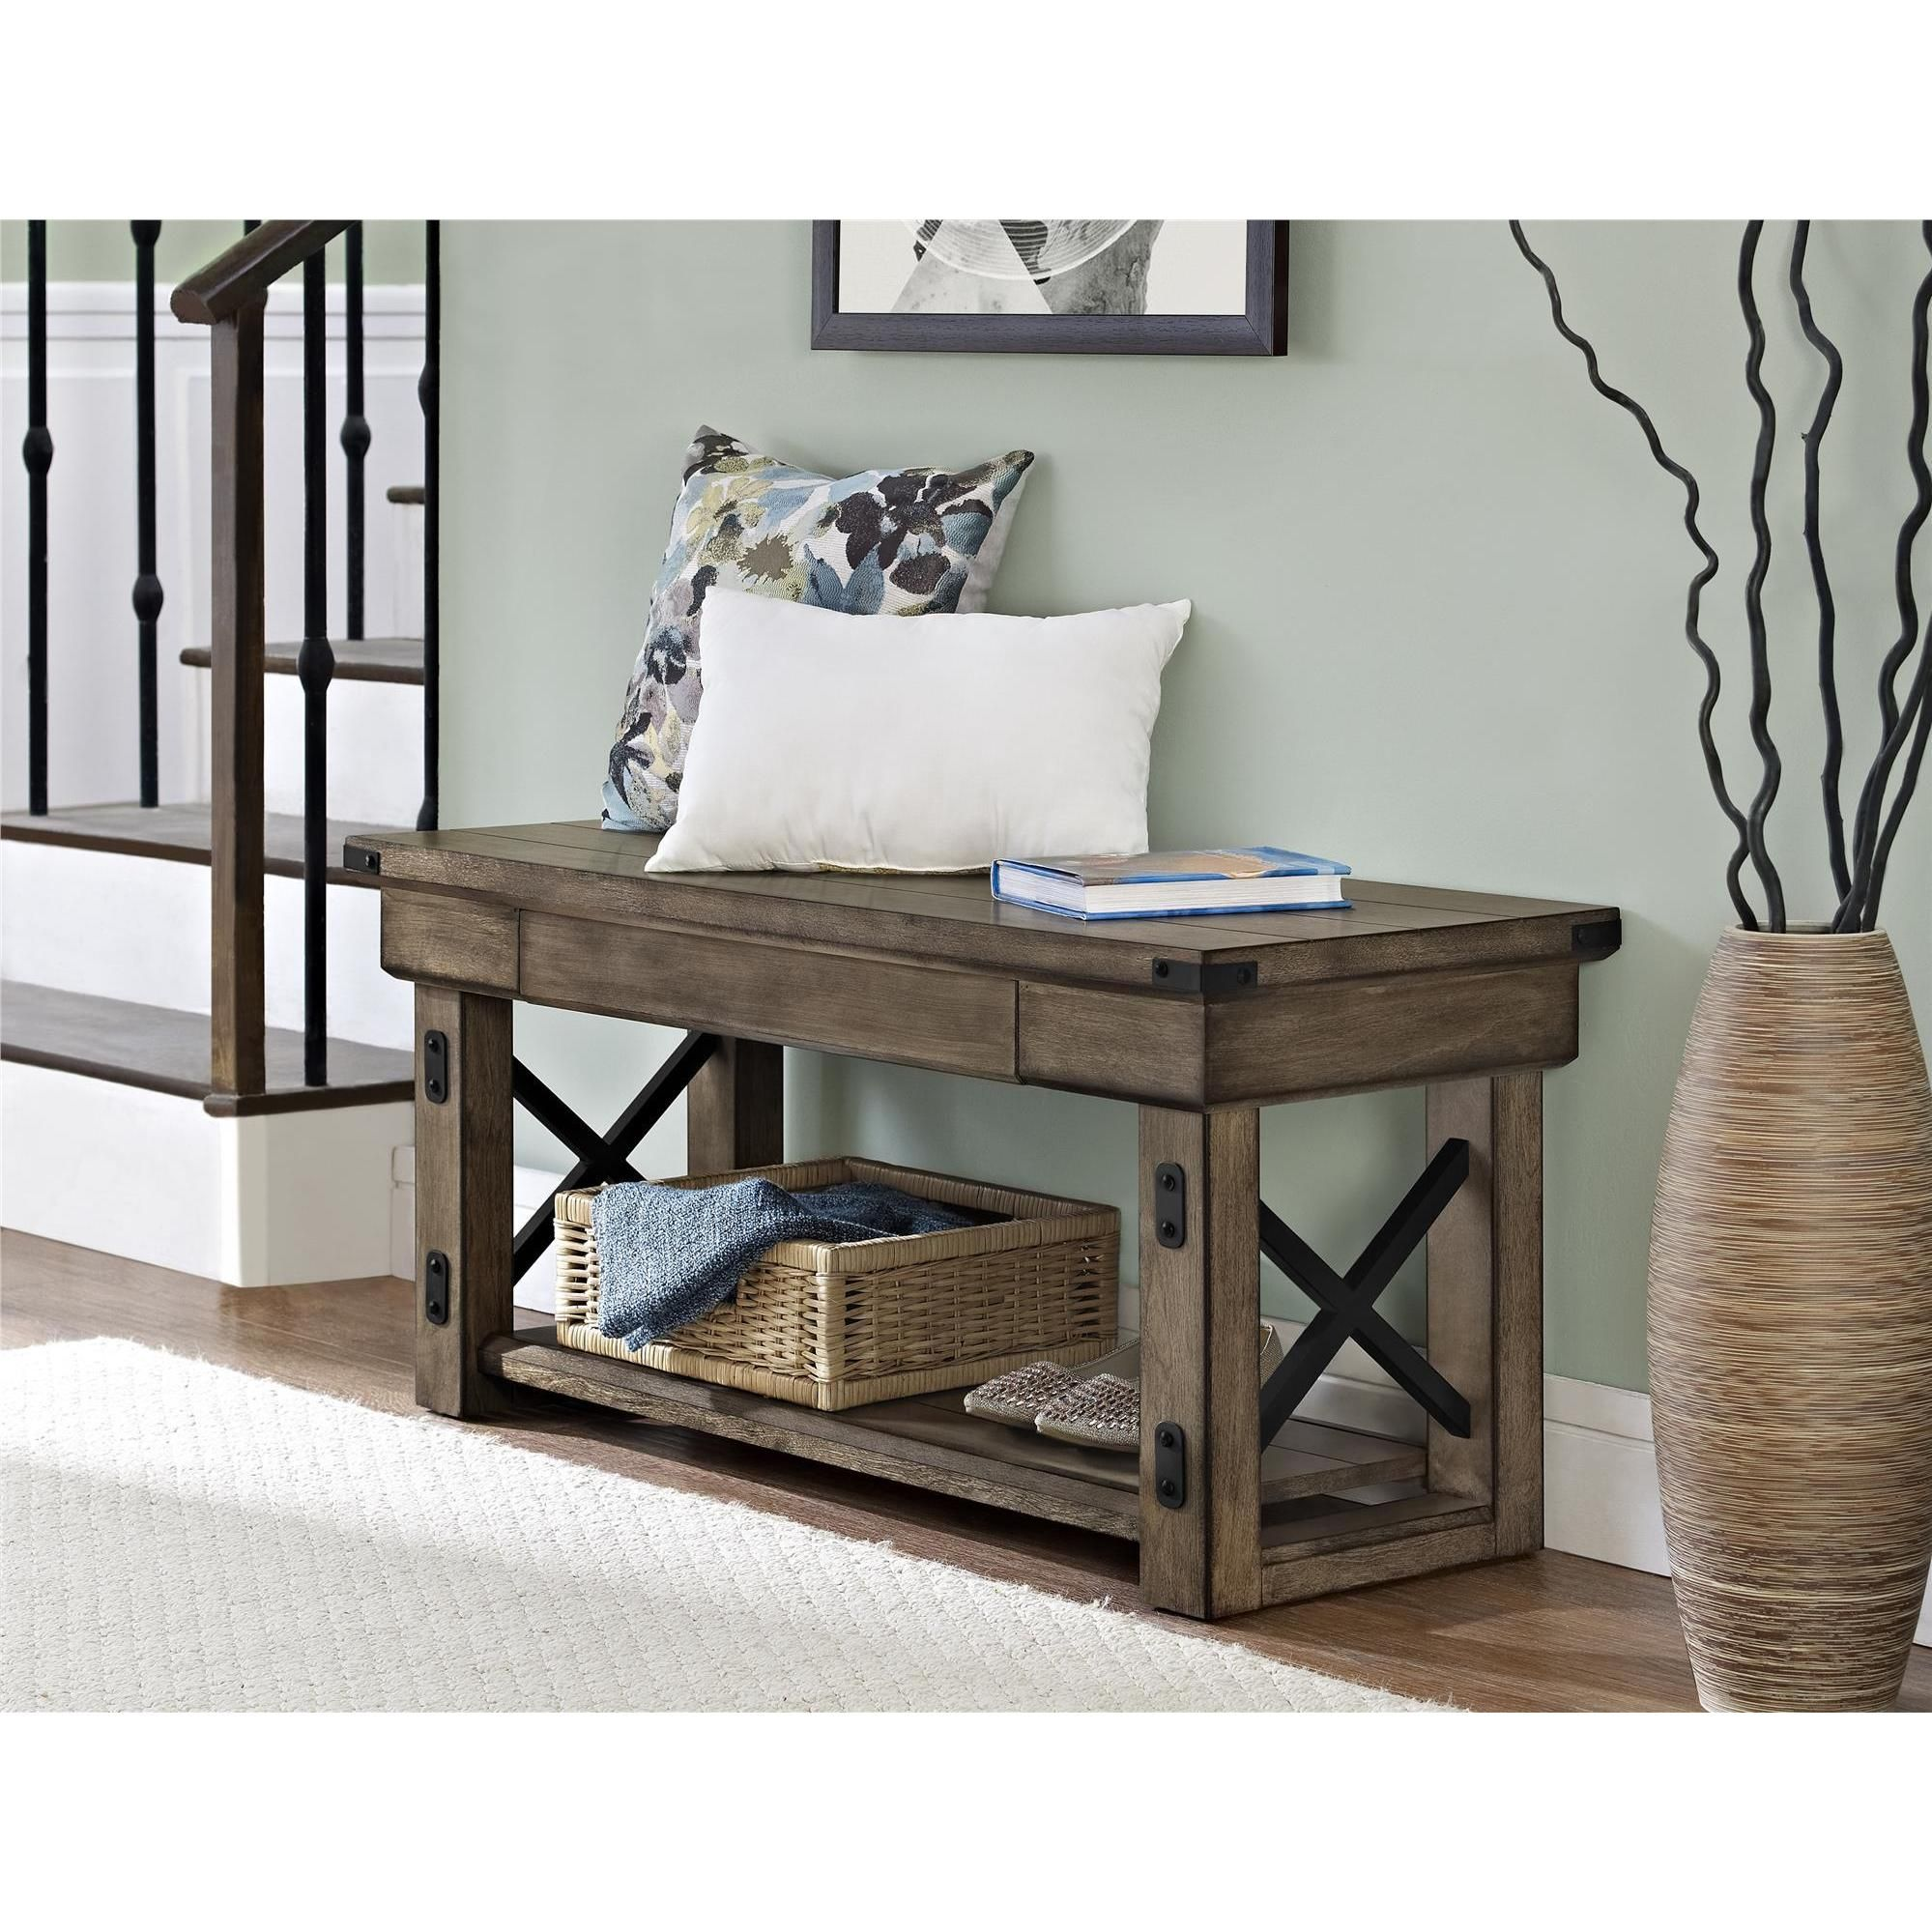 Astonishing Carbon Loft Dewhurst Rustic Veneer Entryway Bench For The Gmtry Best Dining Table And Chair Ideas Images Gmtryco